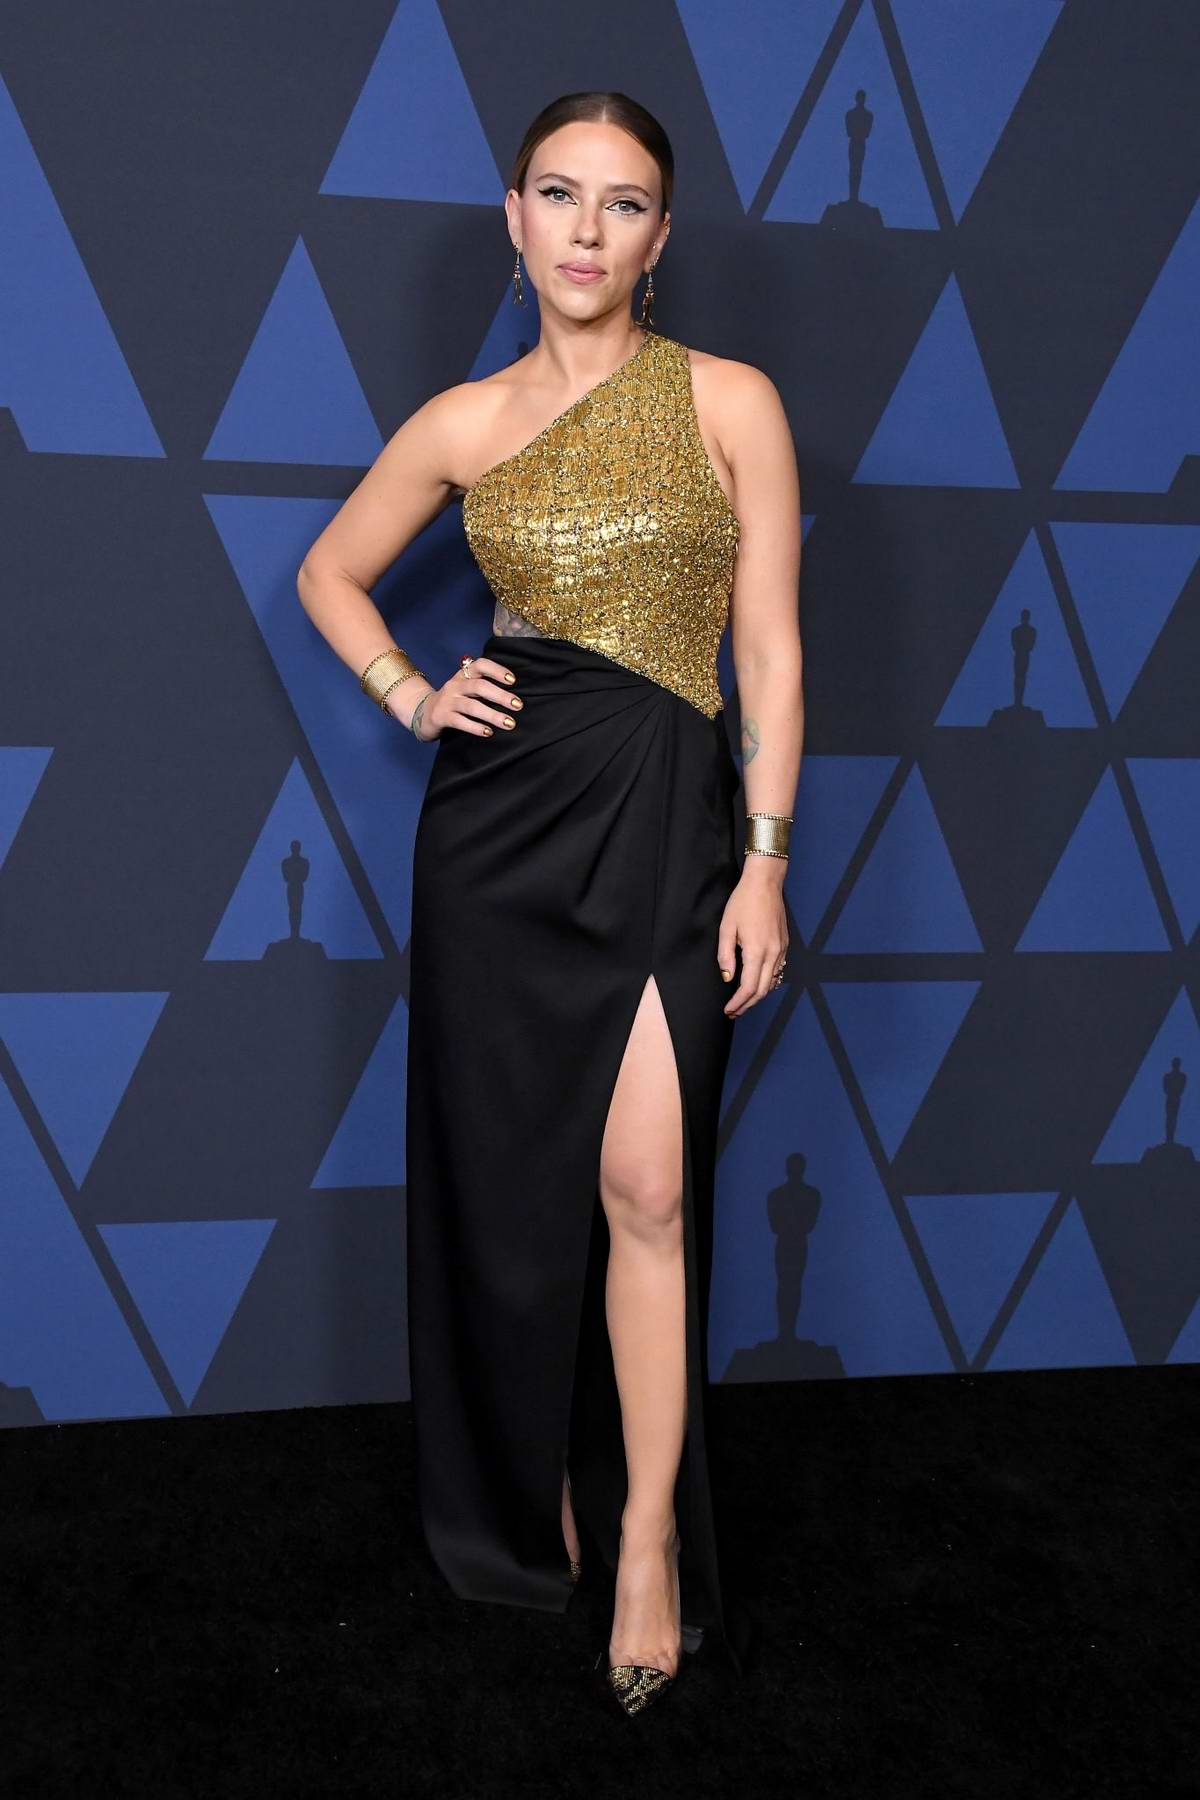 Scarlett Johansson attends the Academy of Motion Picture Arts and Sciences' 11th Annual Governors Awards in Hollywood, California